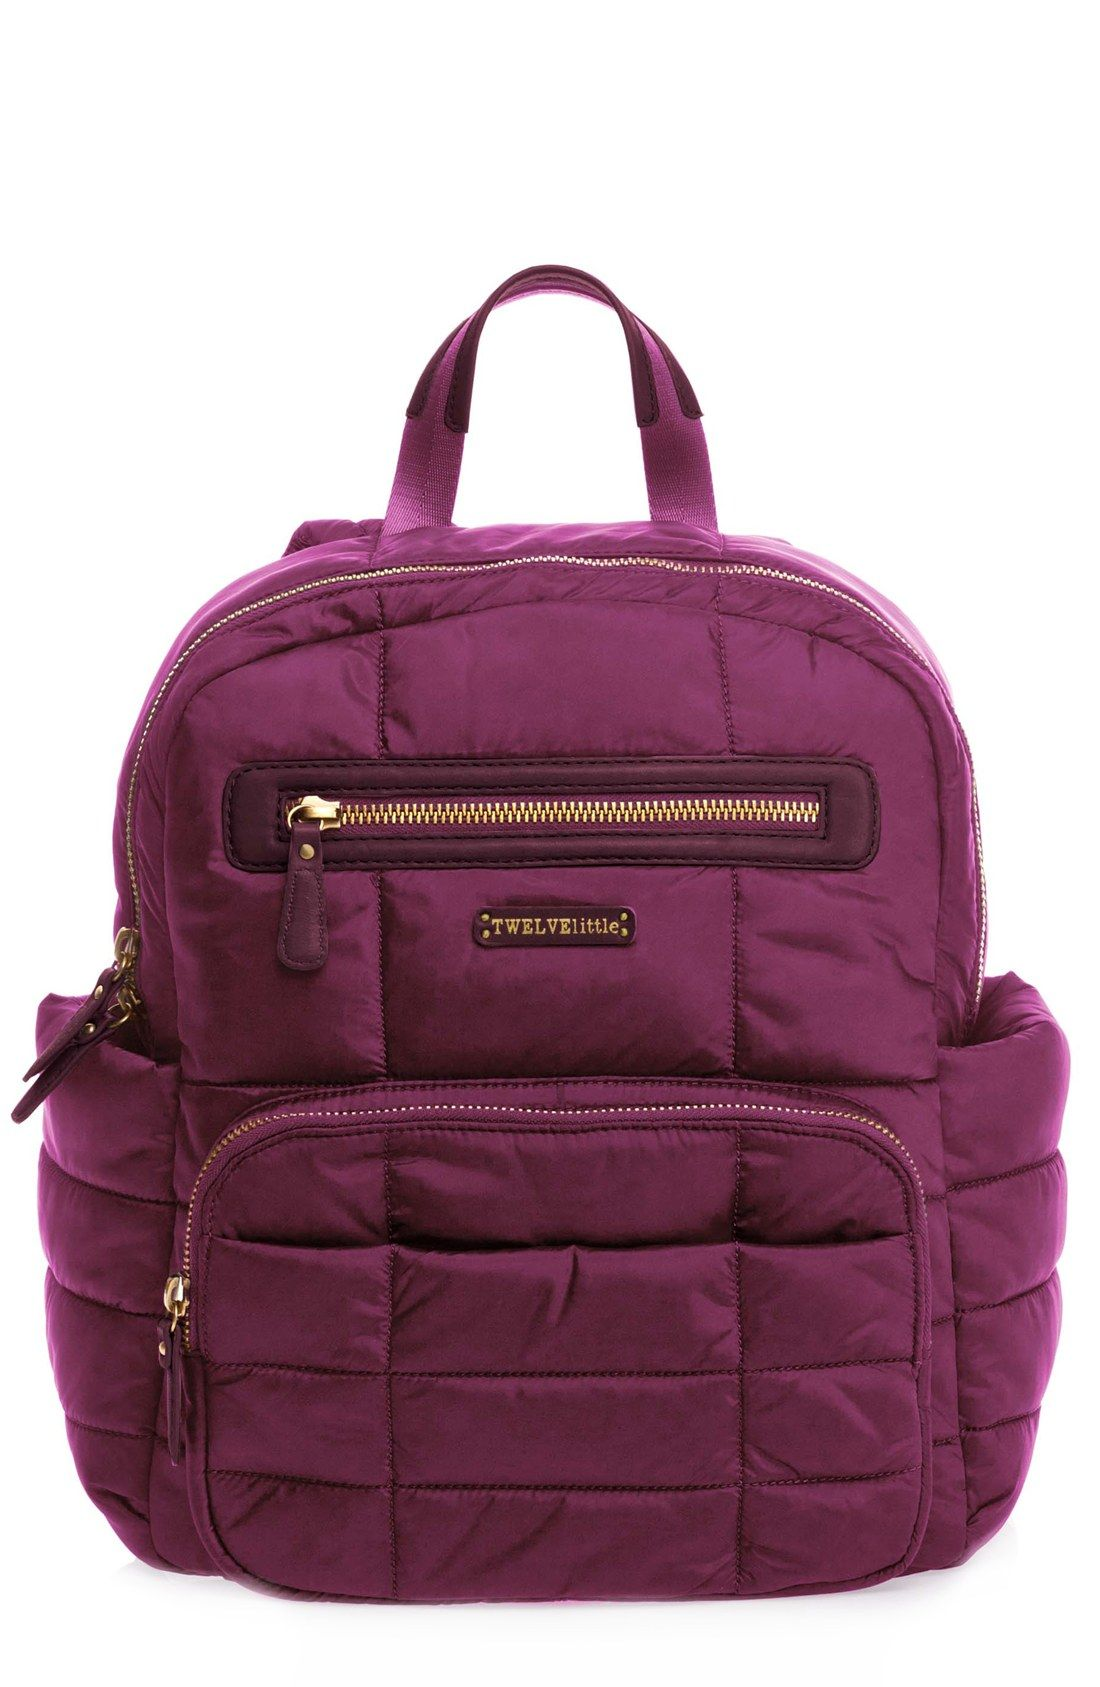 Companion Backpack Quilted Nylon Diaper Bag- Fenix Toulouse Handball 7410dfe566089